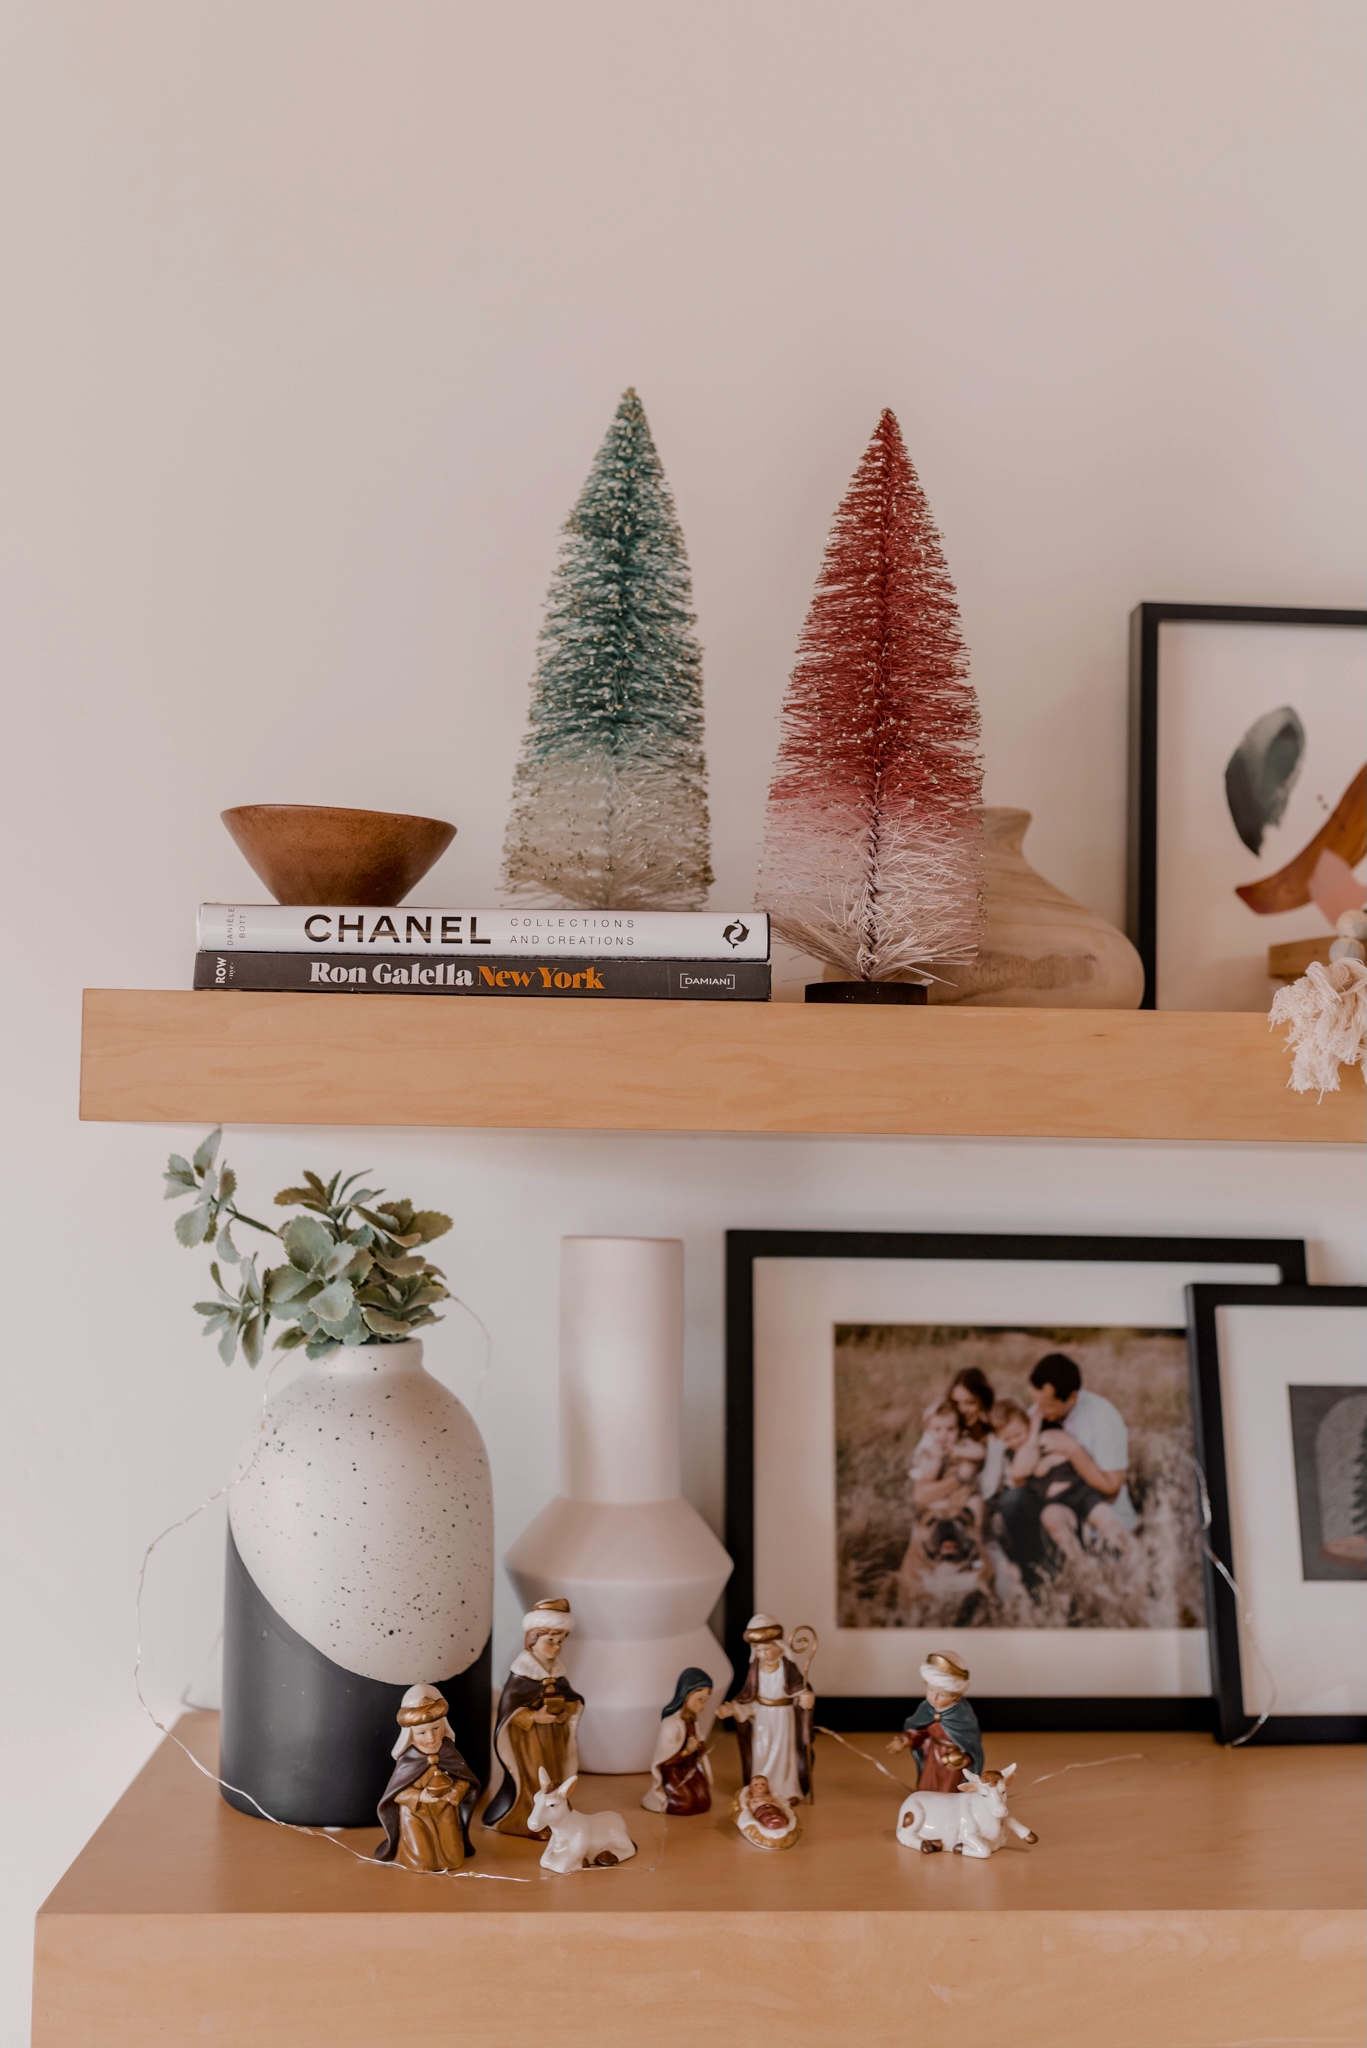 Holiday Gift Guide for the Home  Gifts for the Home by popular San Diego life and style blog, Navy Grace: image of wooden floating shelves decorated with minimalist vases, bottle brush trees, mini nativity set, and black picture frames.